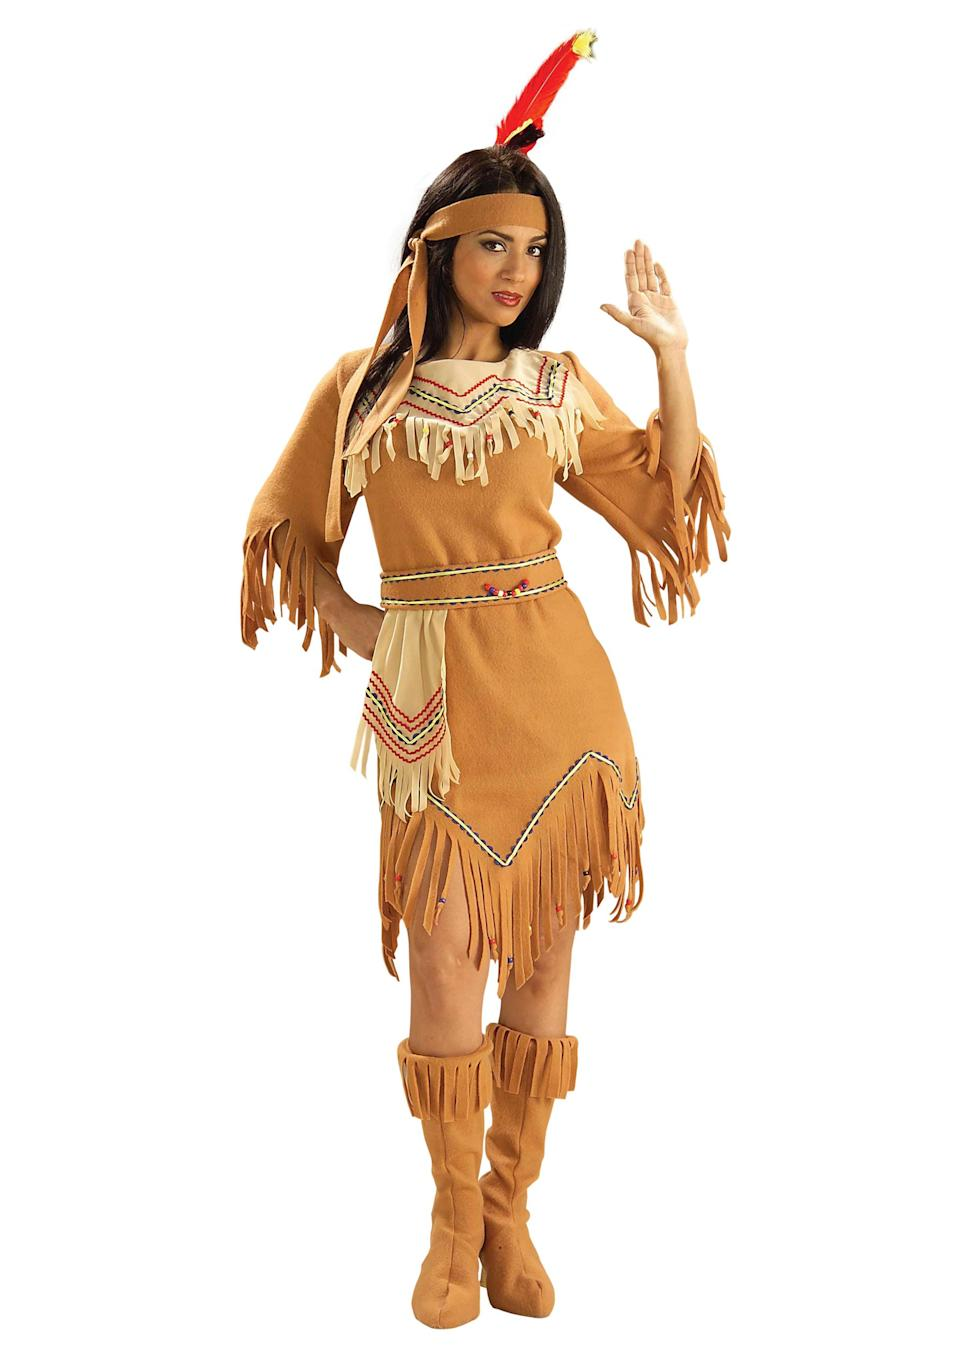 <p>Some of us seemingly still don't realise that cultural appropriation is a thing. Let's ask the Native American community how they feel about this look.<br><i>[Photo: Halloween Costumes]</i> </p>